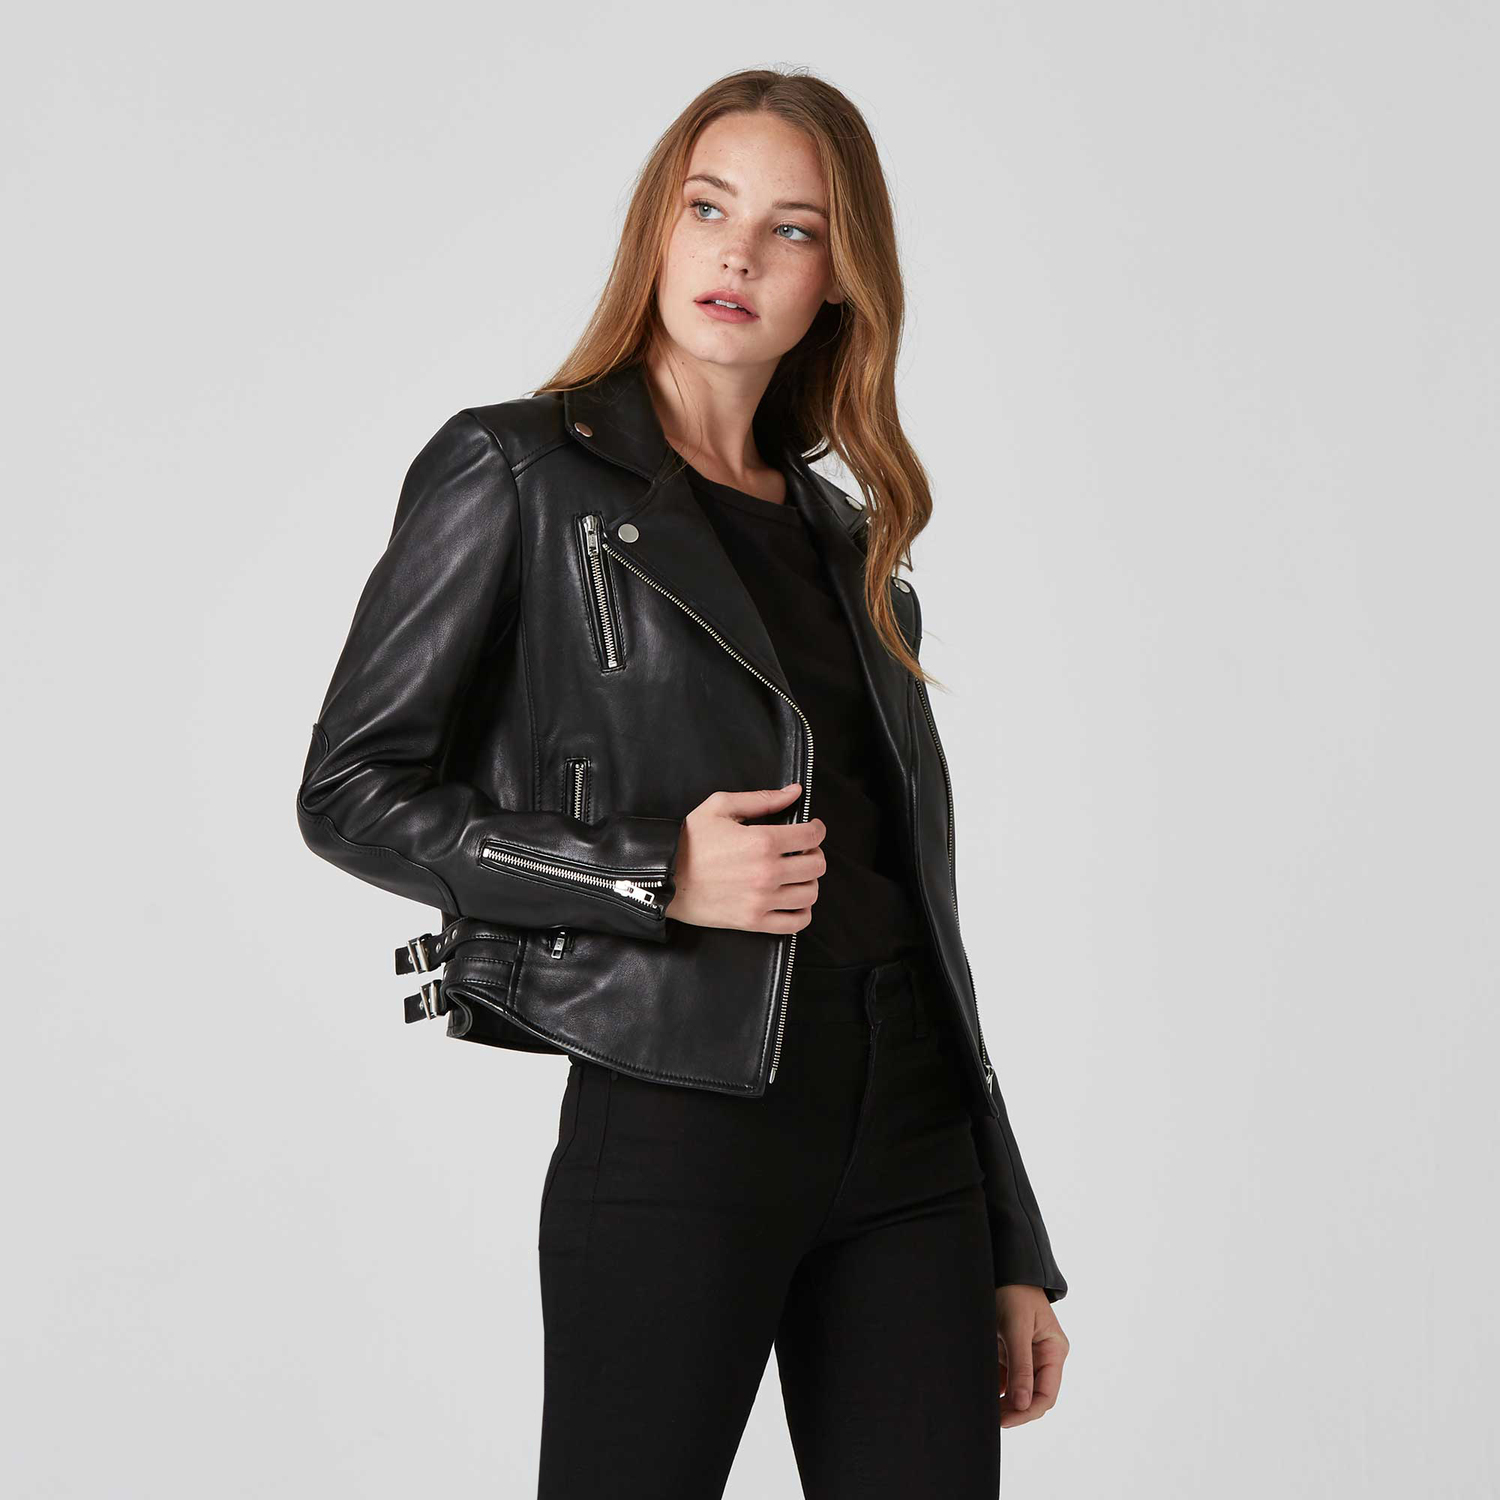 Womens Leather Moto Jacket With Silver Hardware 350  Dstld-4997